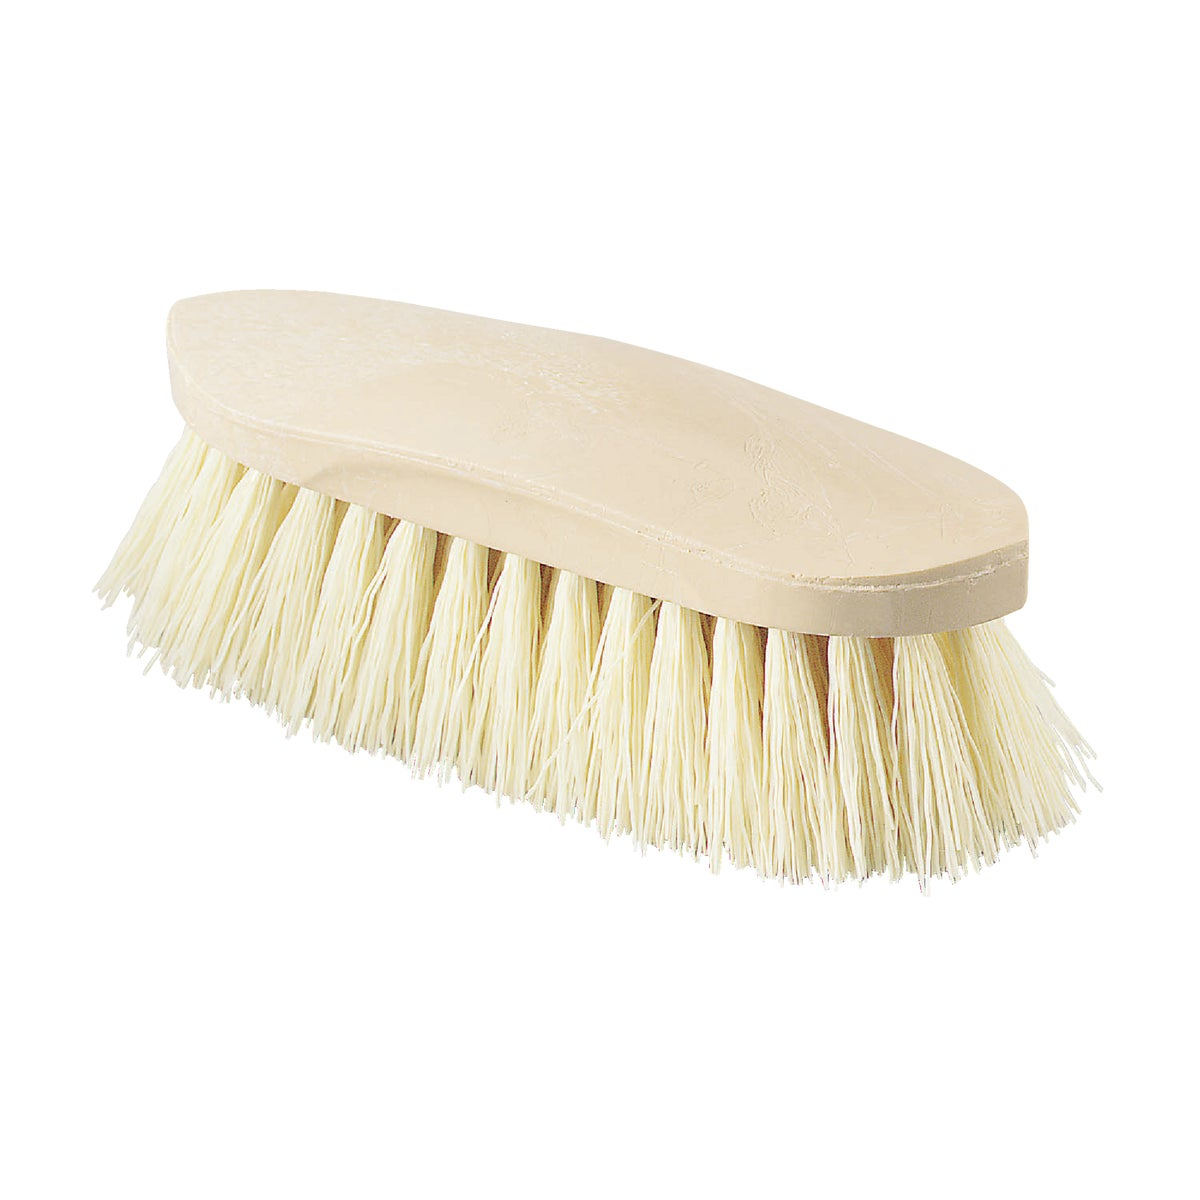 STIFF GROOMING BRUSH - 35 by Decker Manufacturing